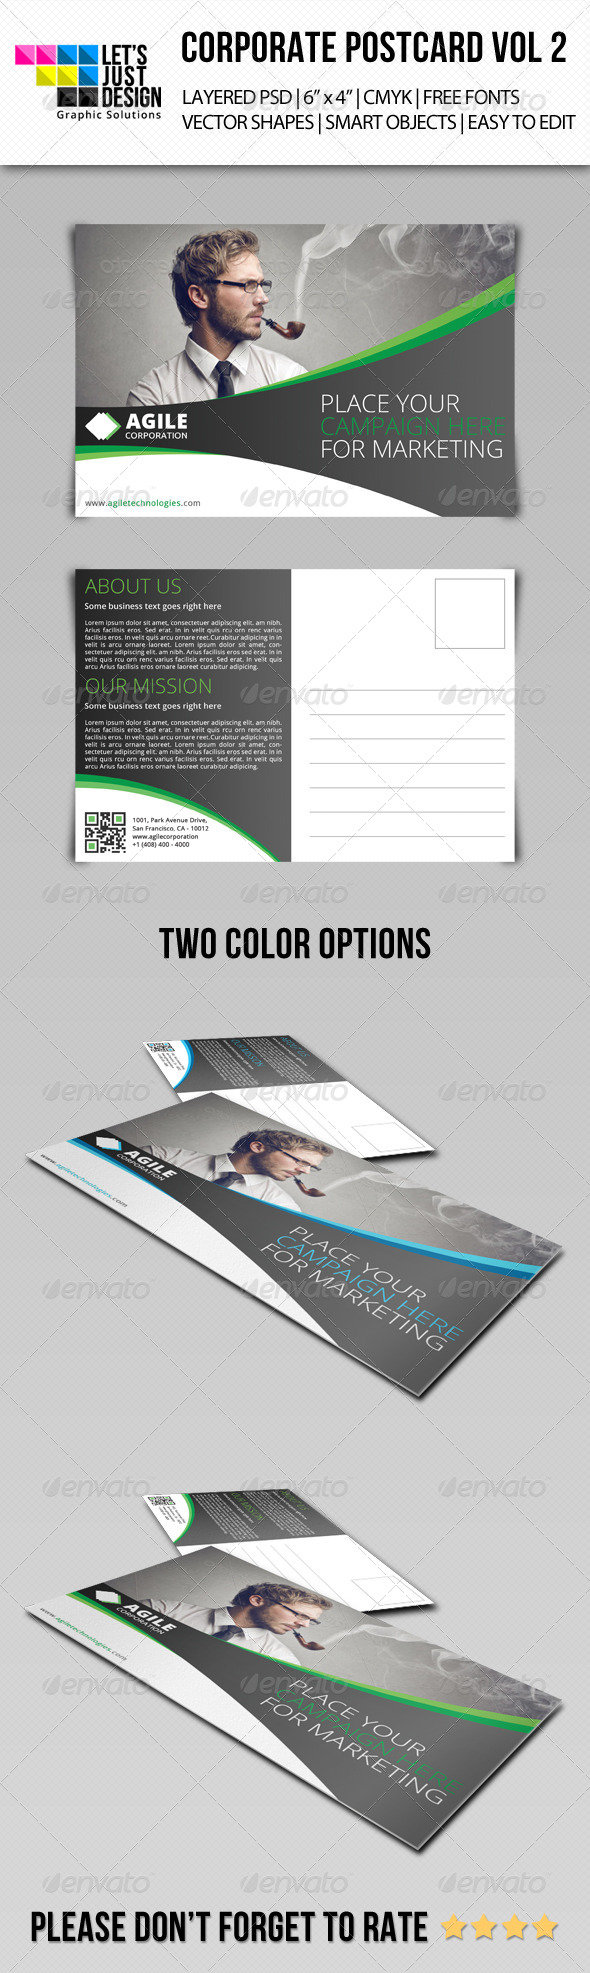 GraphicRiver Corporate Postcard Template Vol 2 7876024